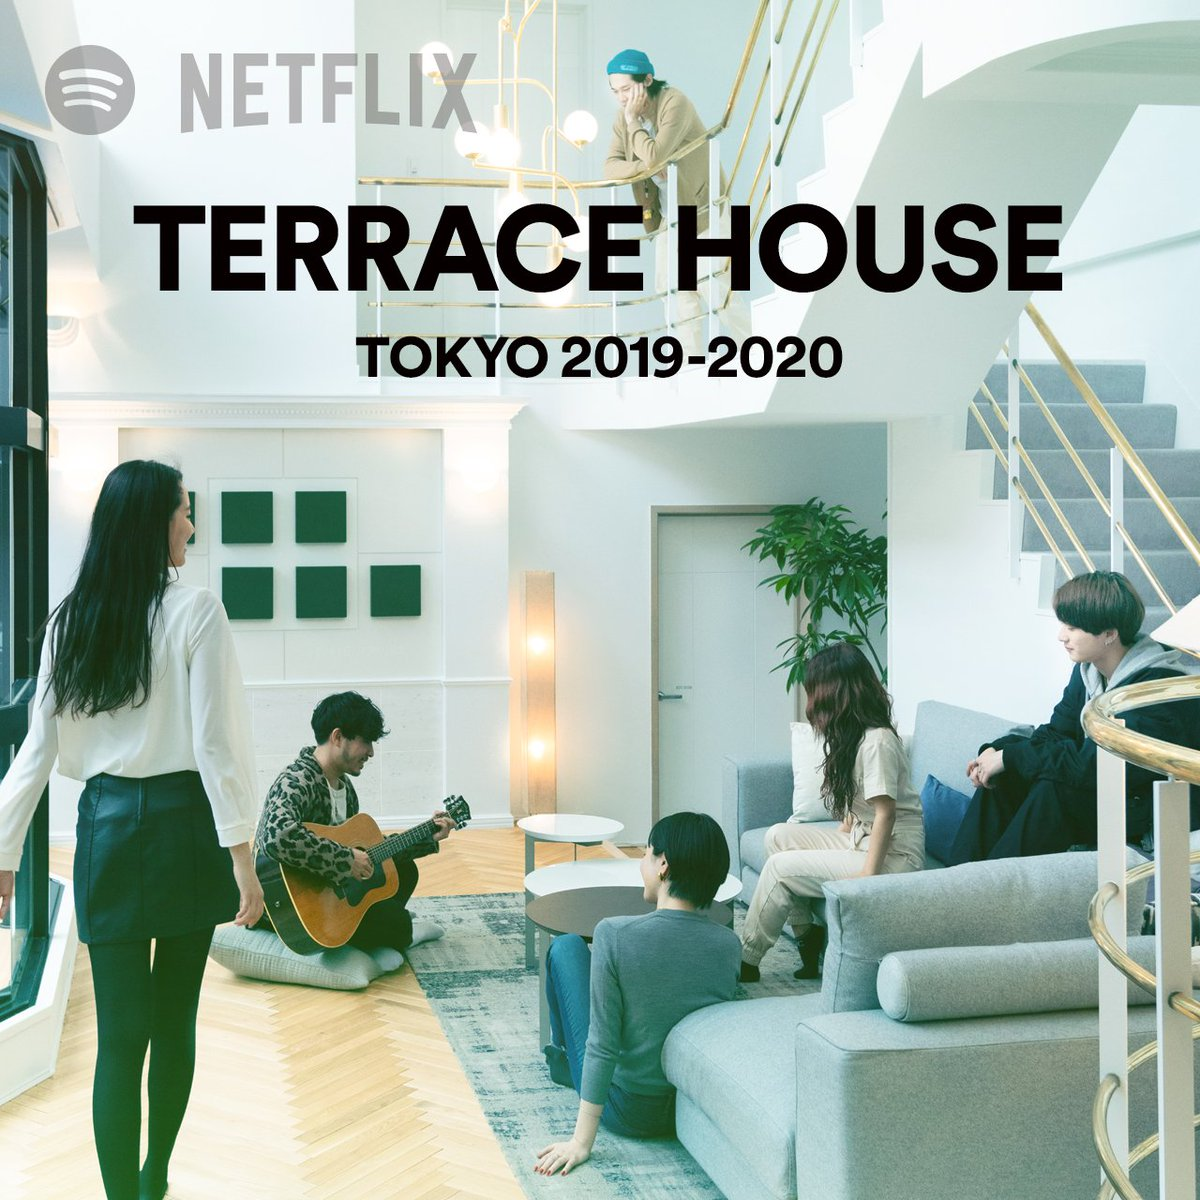 Terrace House: a refreshing twist on reality television